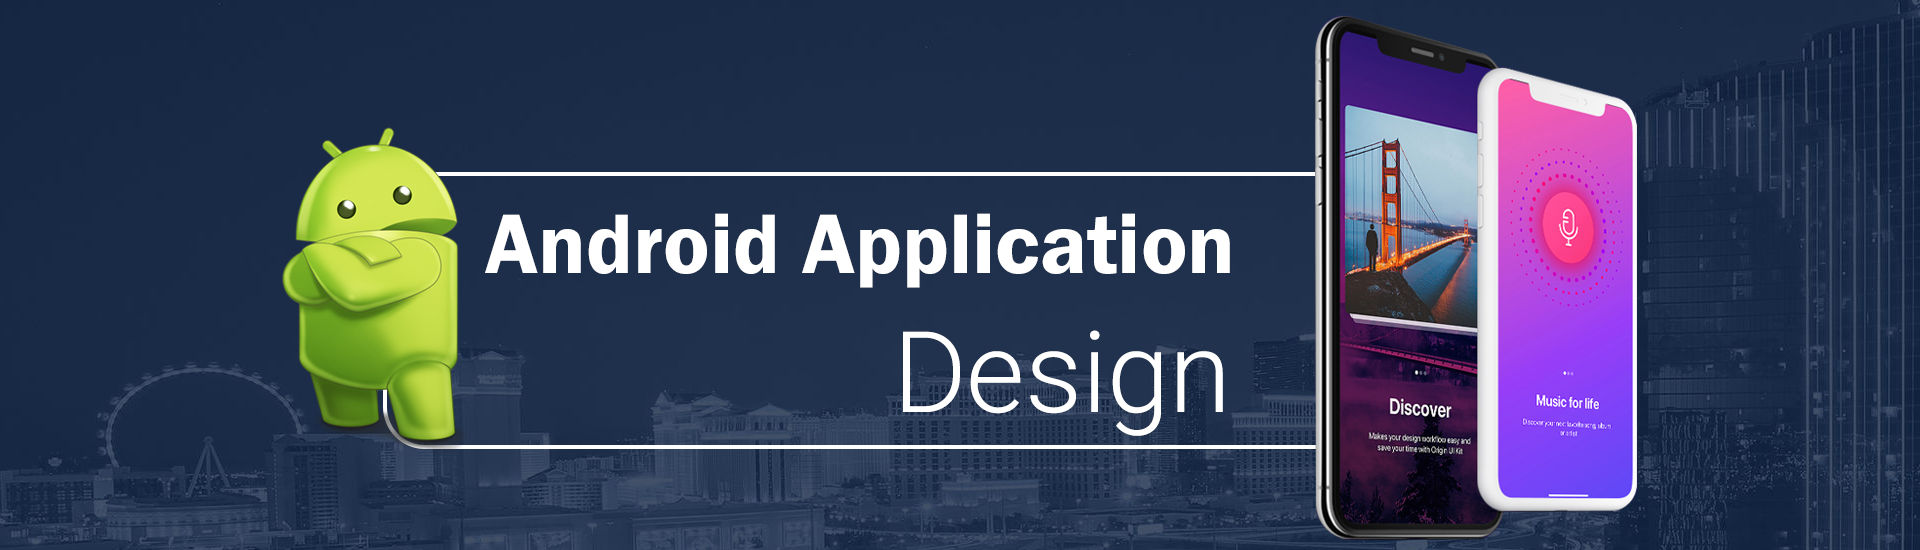 Android Application Design